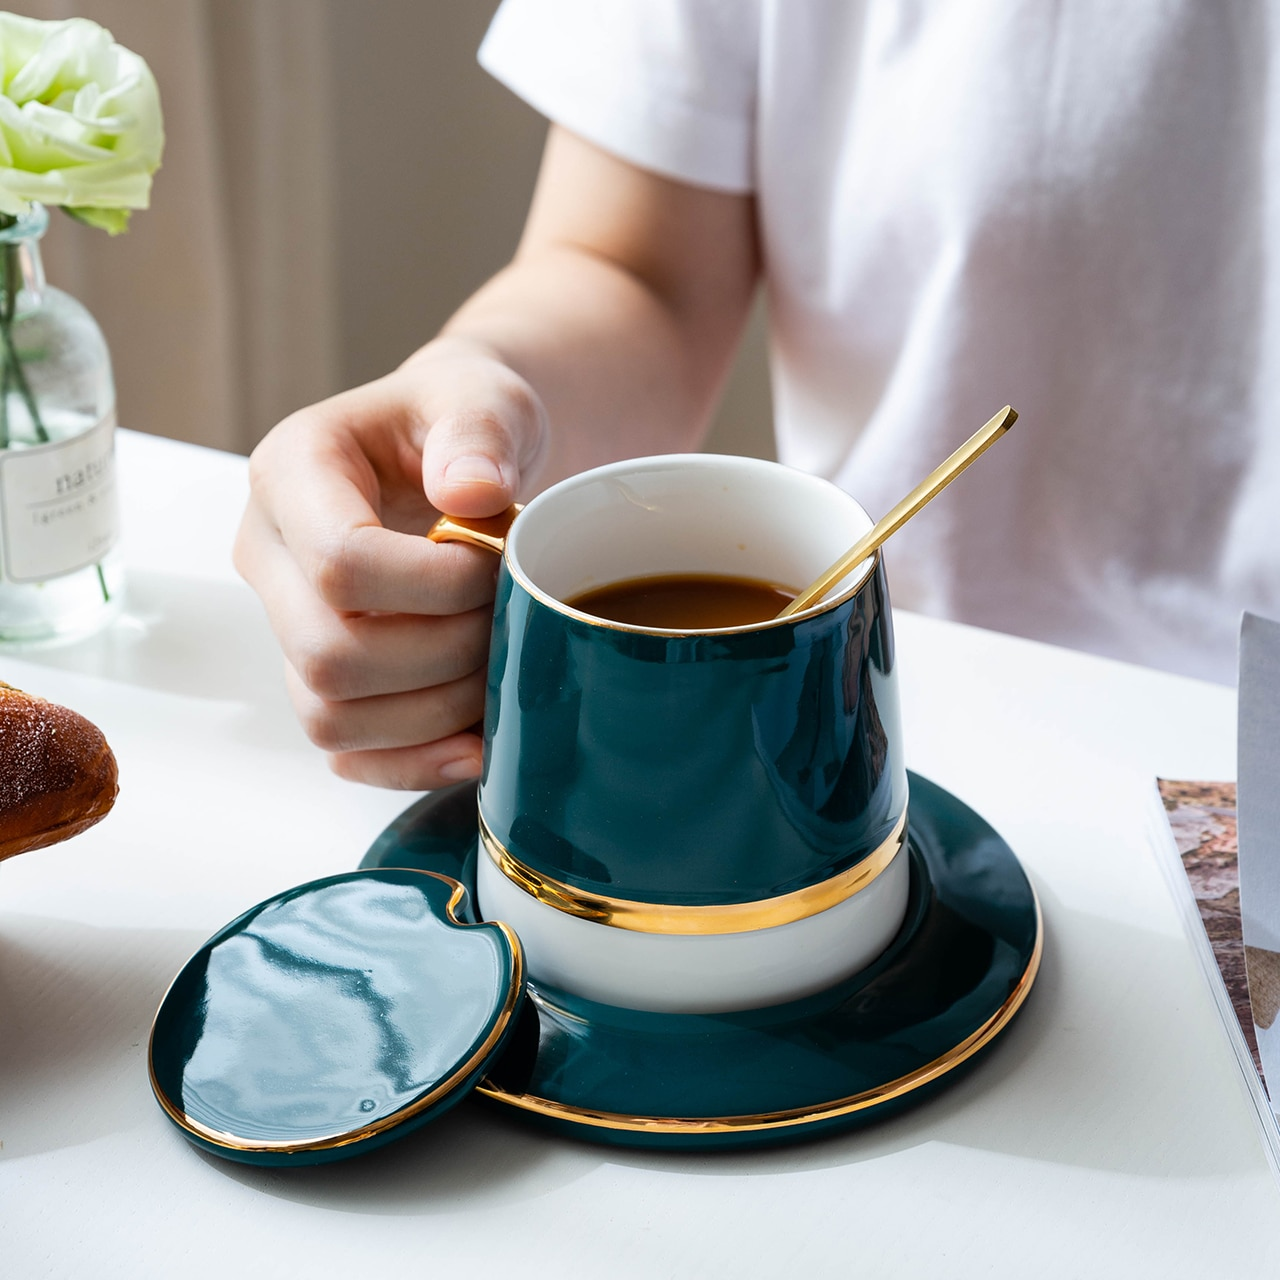 MDZF SWEETHOME Green Coffee Cup Set With Mat And Lid Spoon Milk Ceramic Cup Breakfast Tableware Set Couple Mug Birthday Gift Box